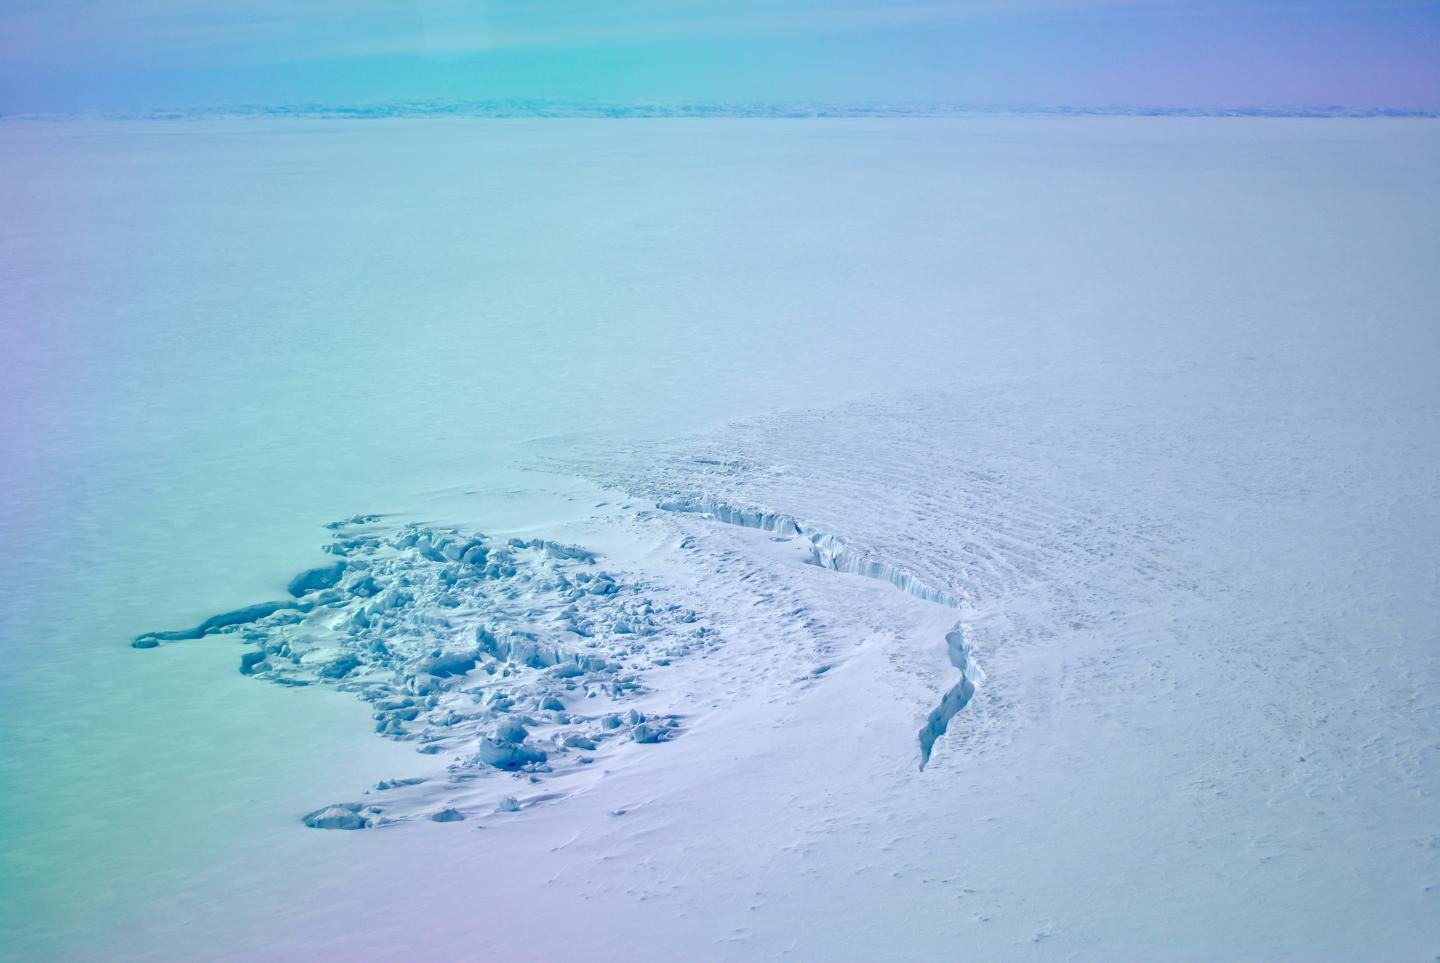 Crater Left behind by a Drained Sub-Glacial Lake in Greenland